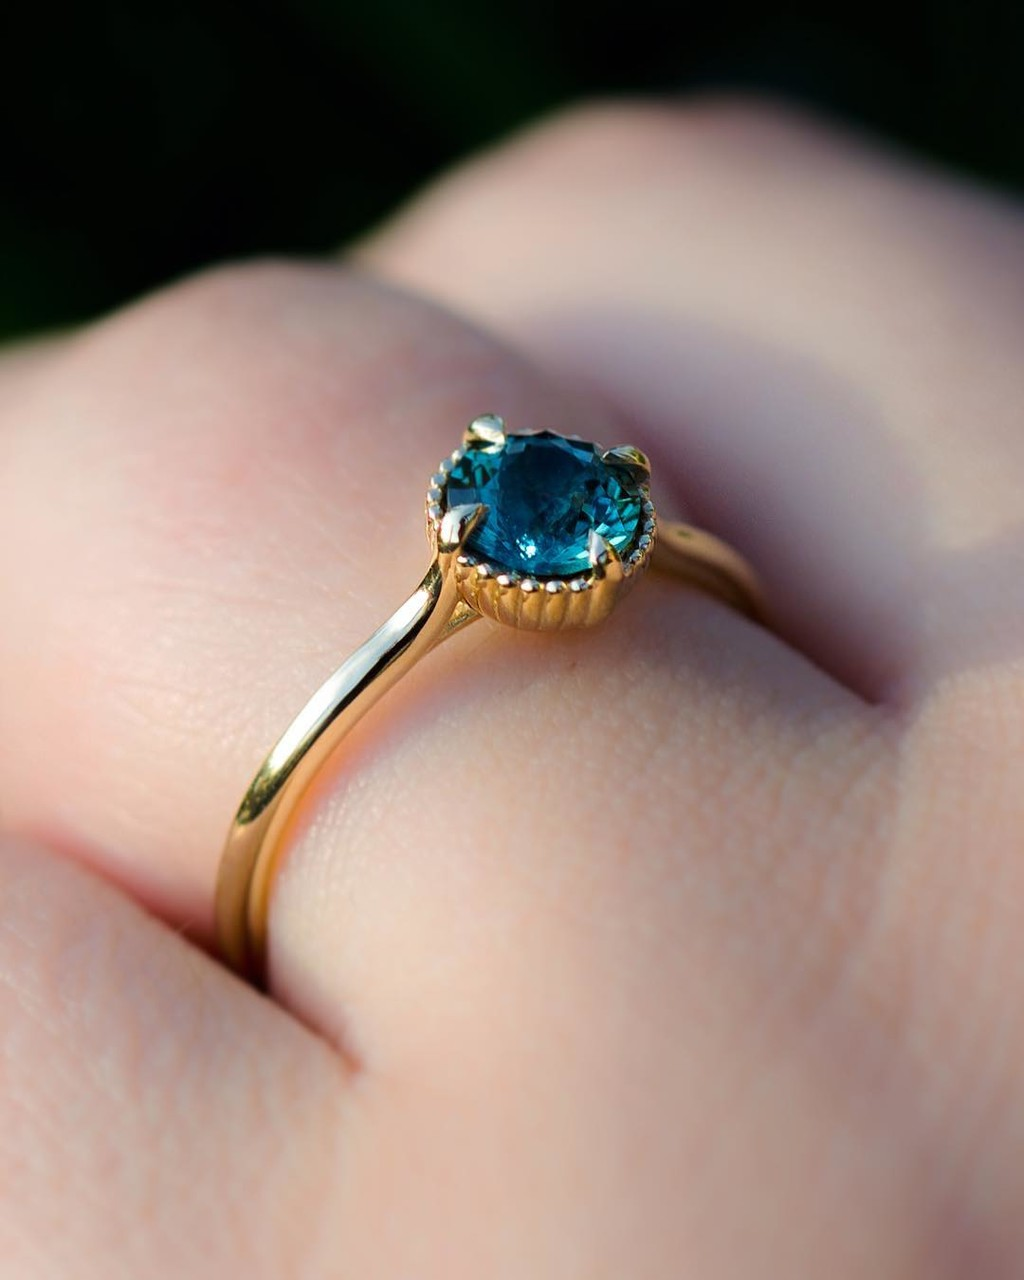 🌟💙🌞 Starting the week Fresh with this scintillating one-of-a-kind American Cut and Mined, Teal Montana Sapphire! Set lovingly